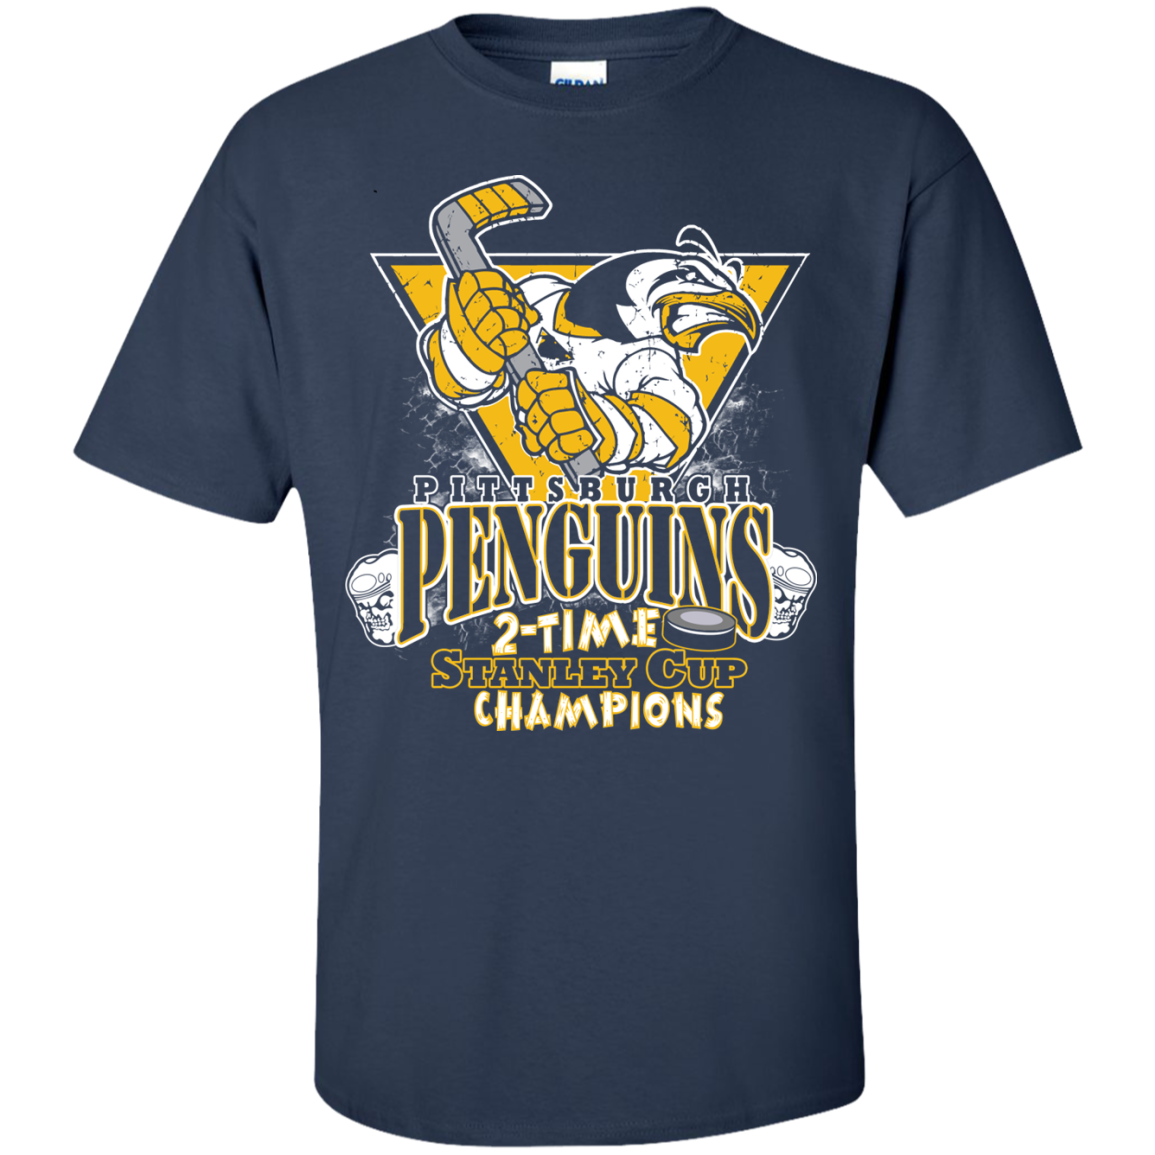 Penguins 2 Time Stanley Cup Champions